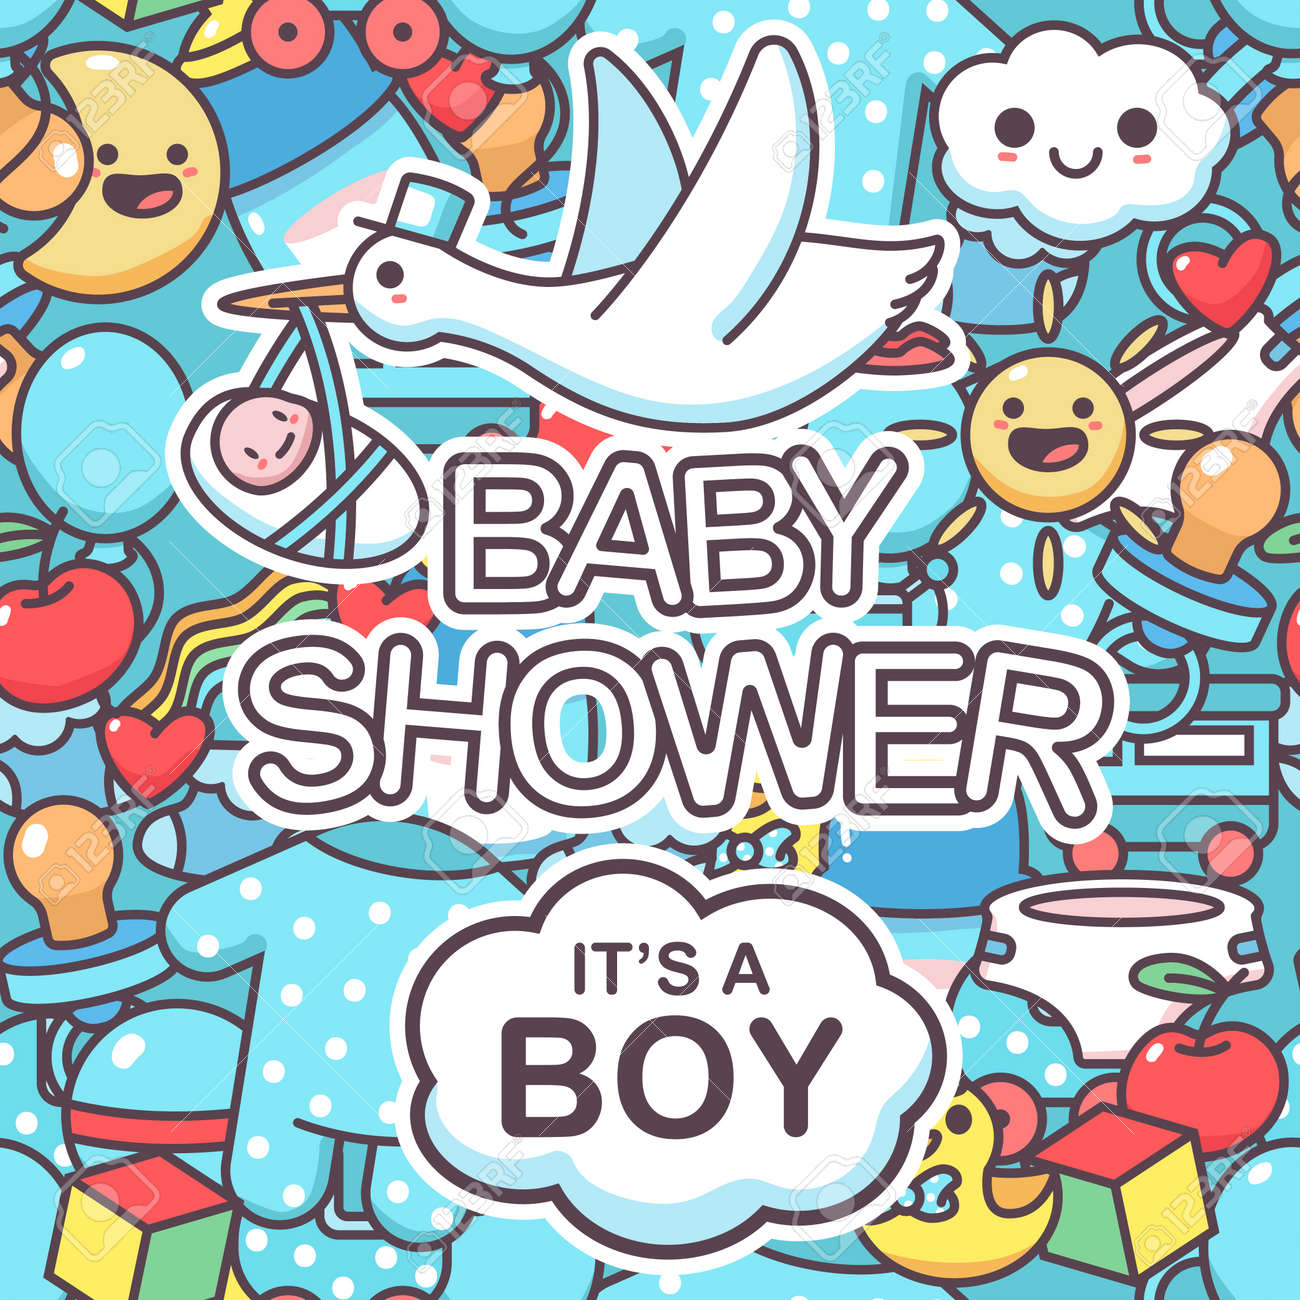 It's a boy vector seamless pattern with doodle elements. Baby shower cartoon background. - 170610852